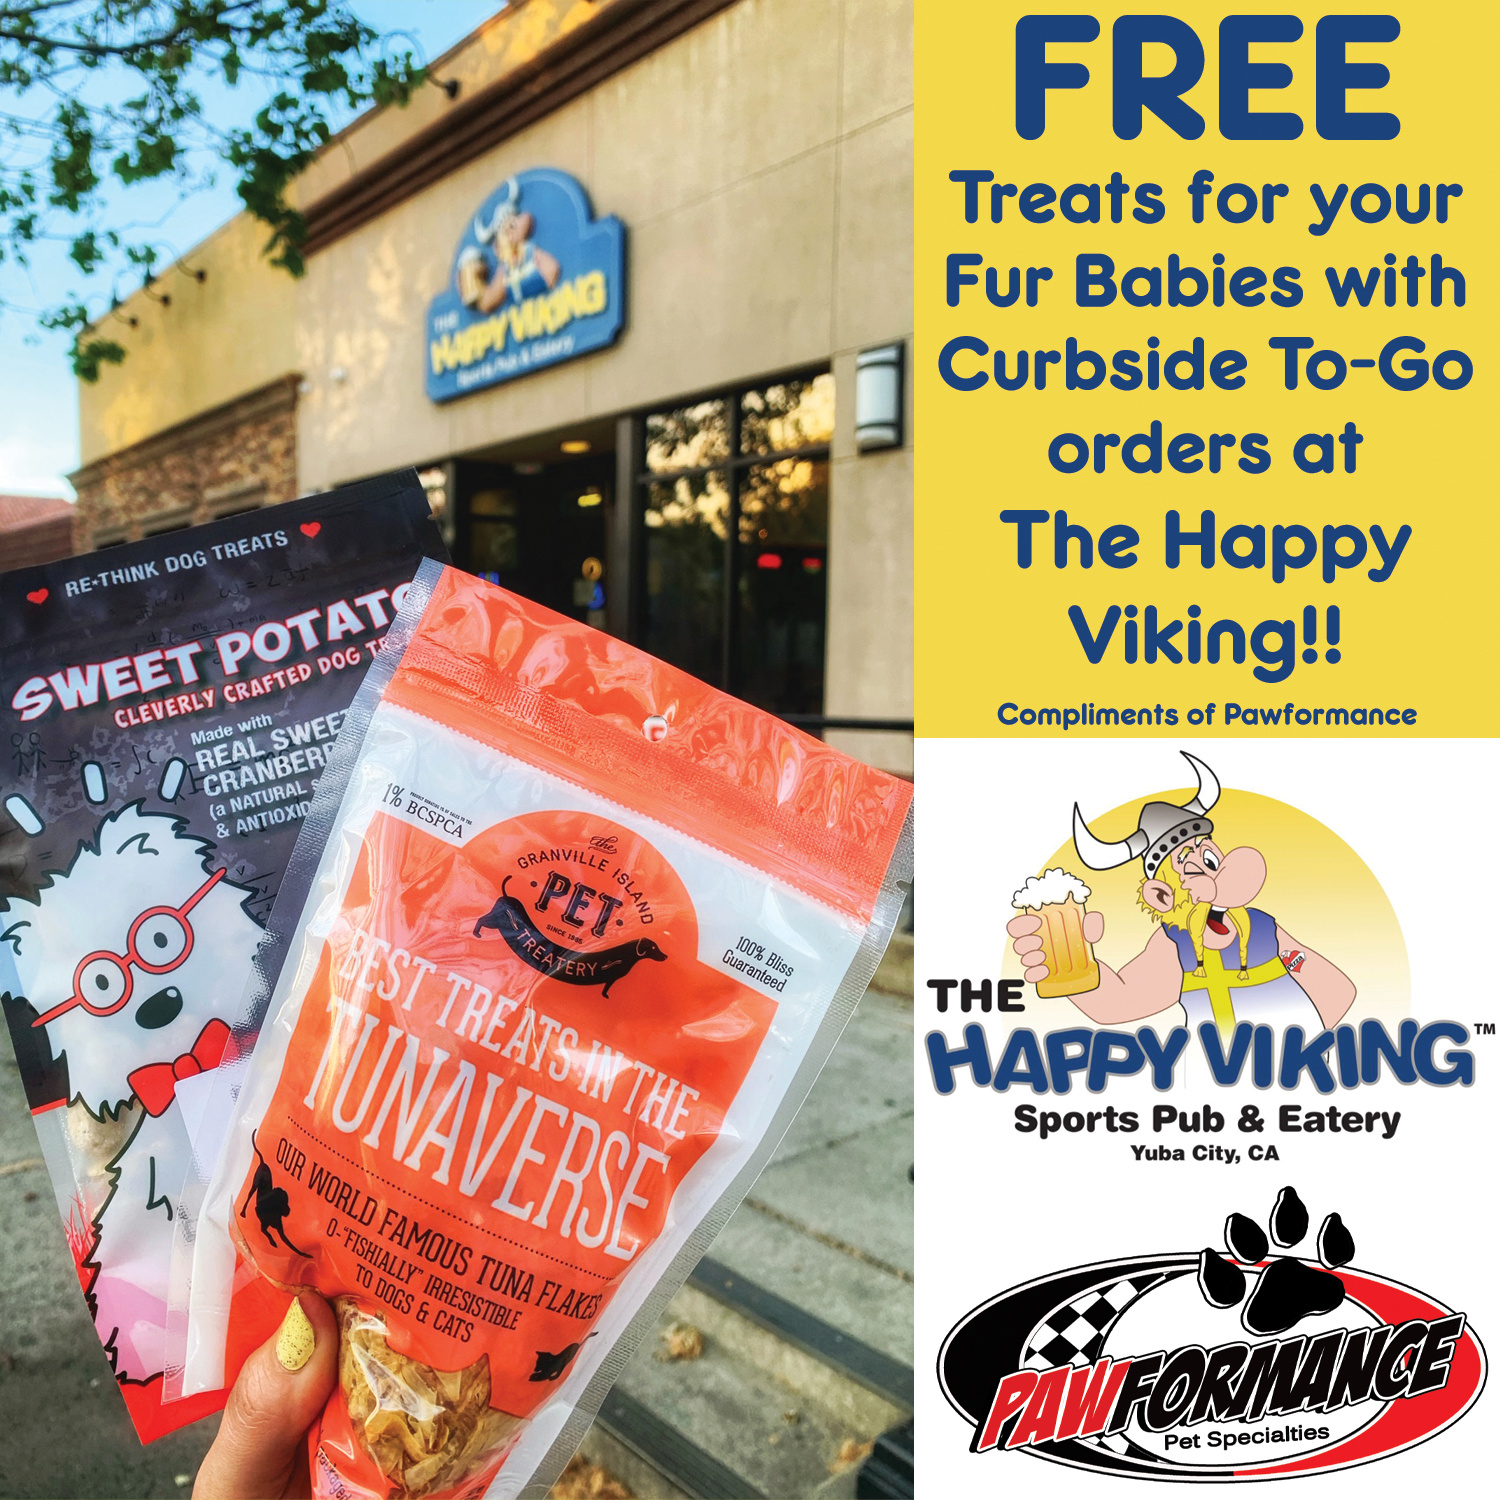 Free Treats With Take-Out Order From The Happy Viking!